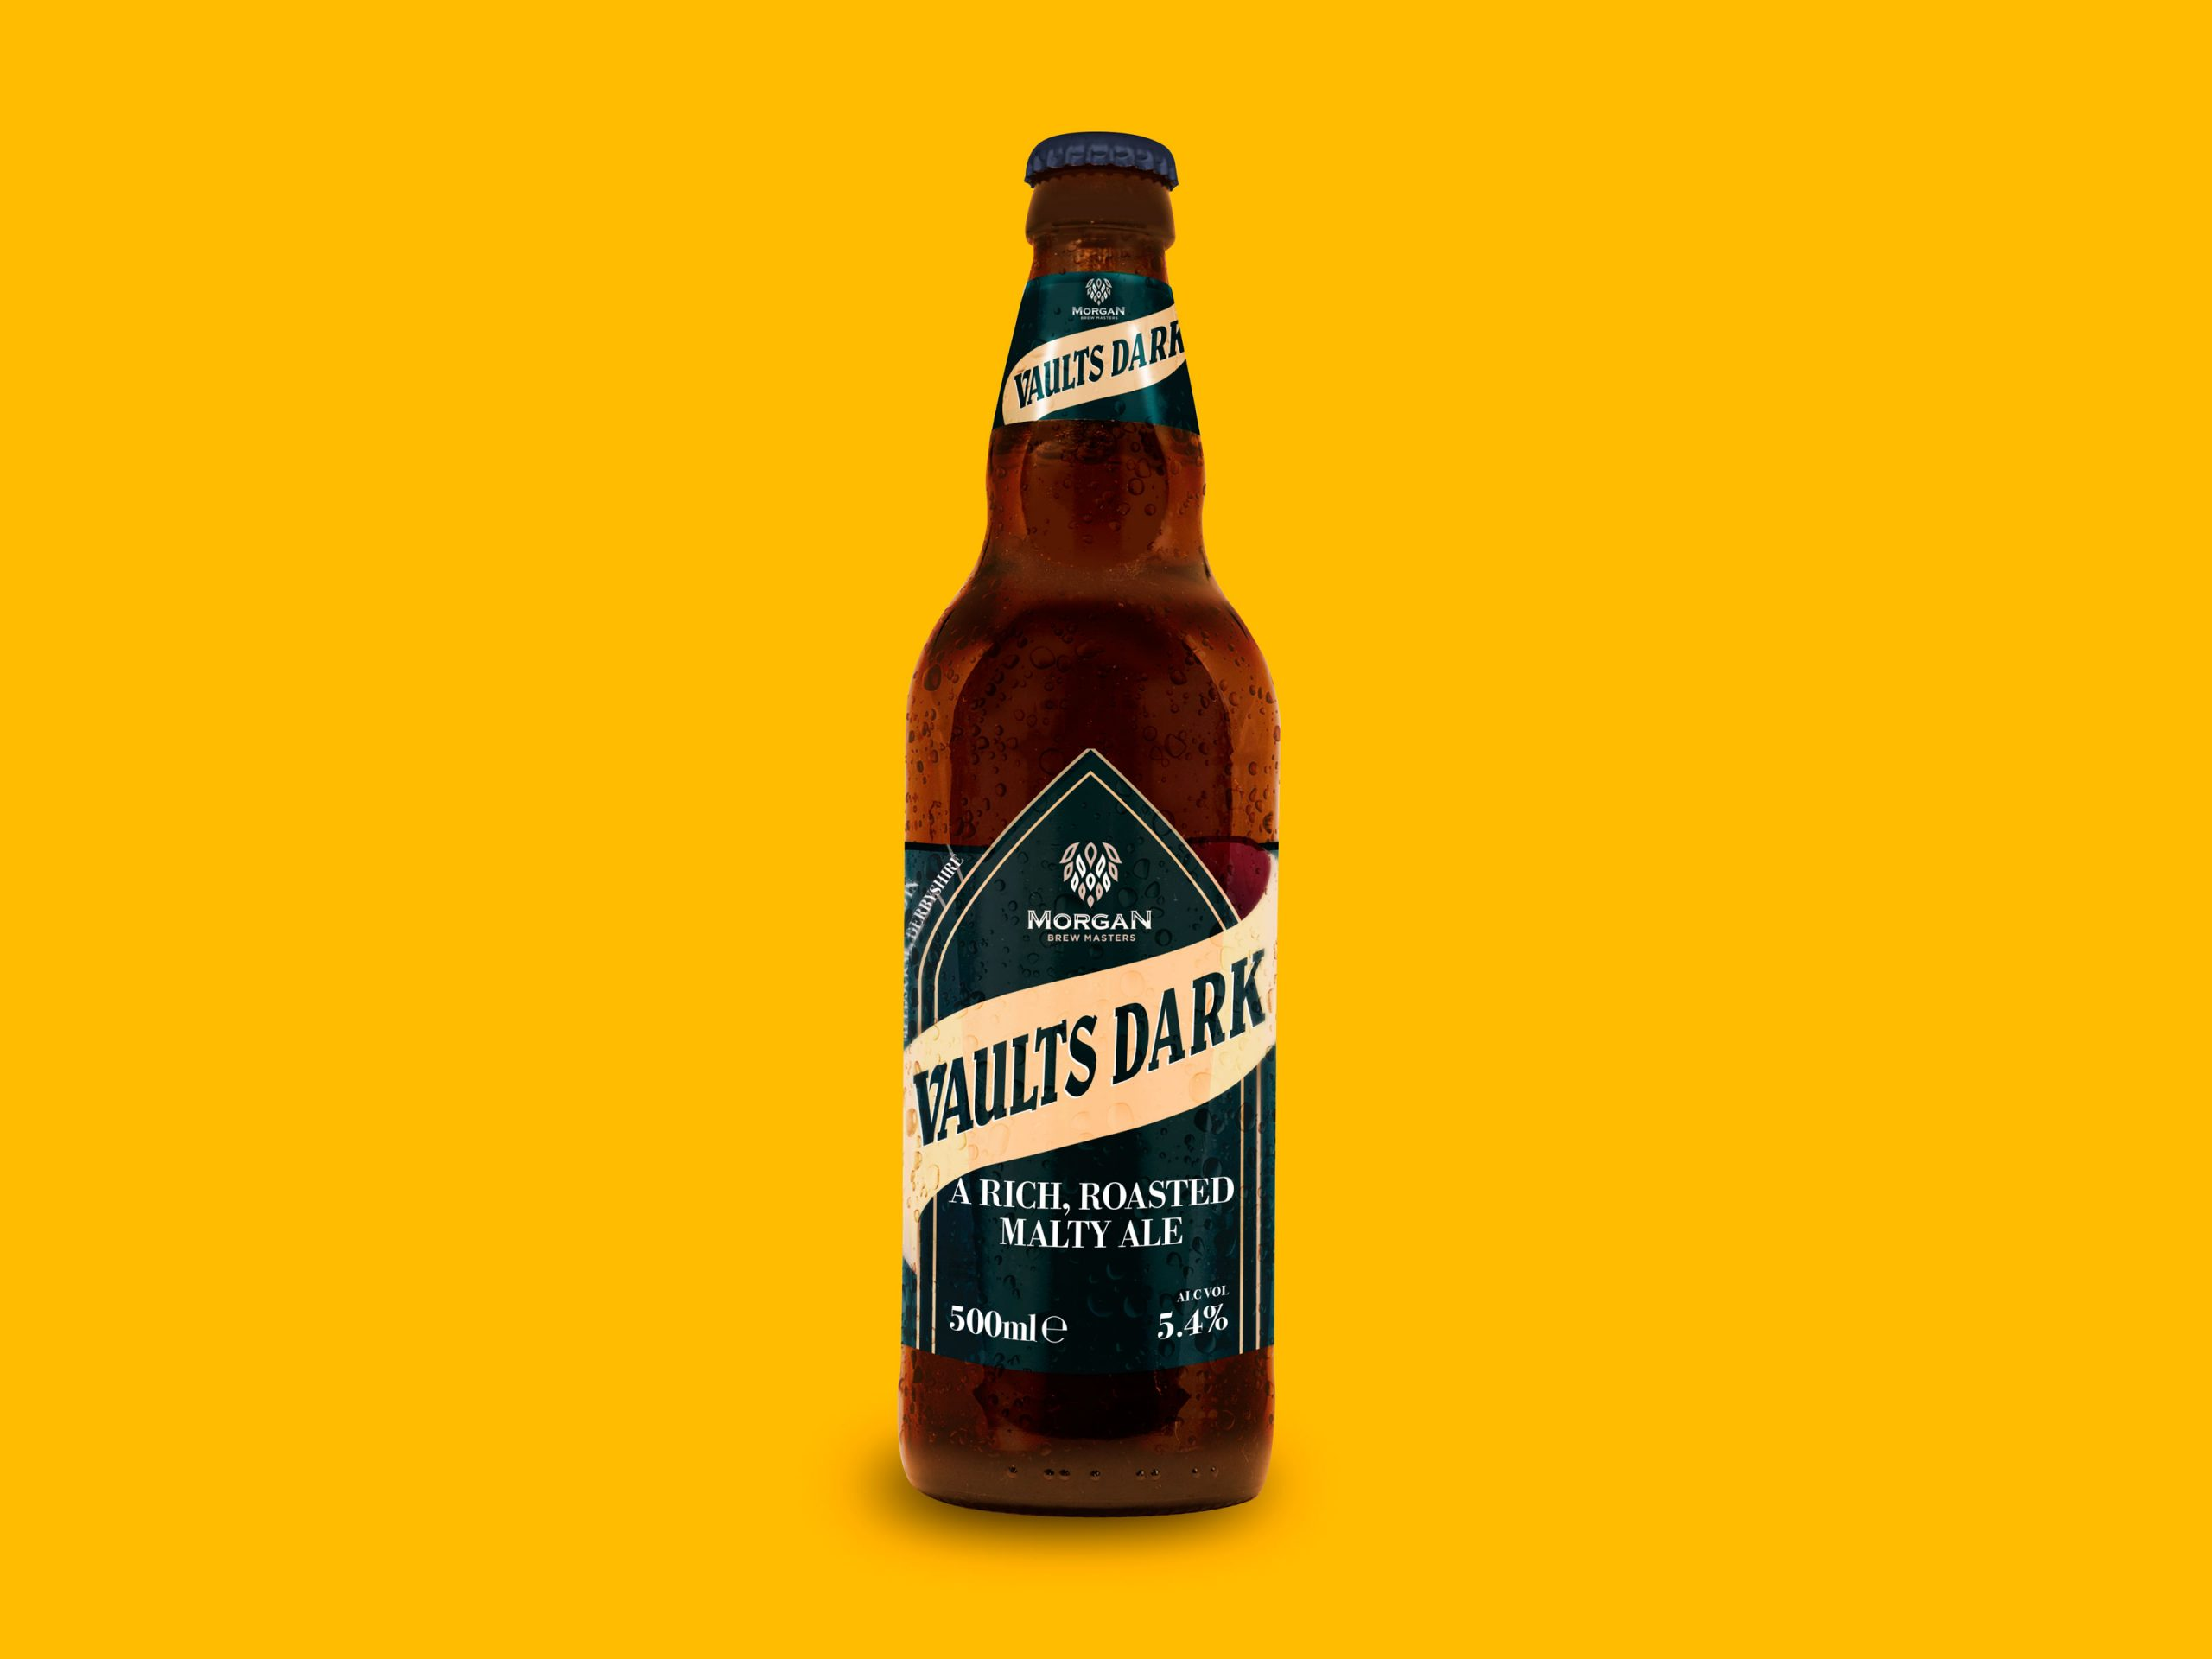 Vaults Dark Beer Bottle